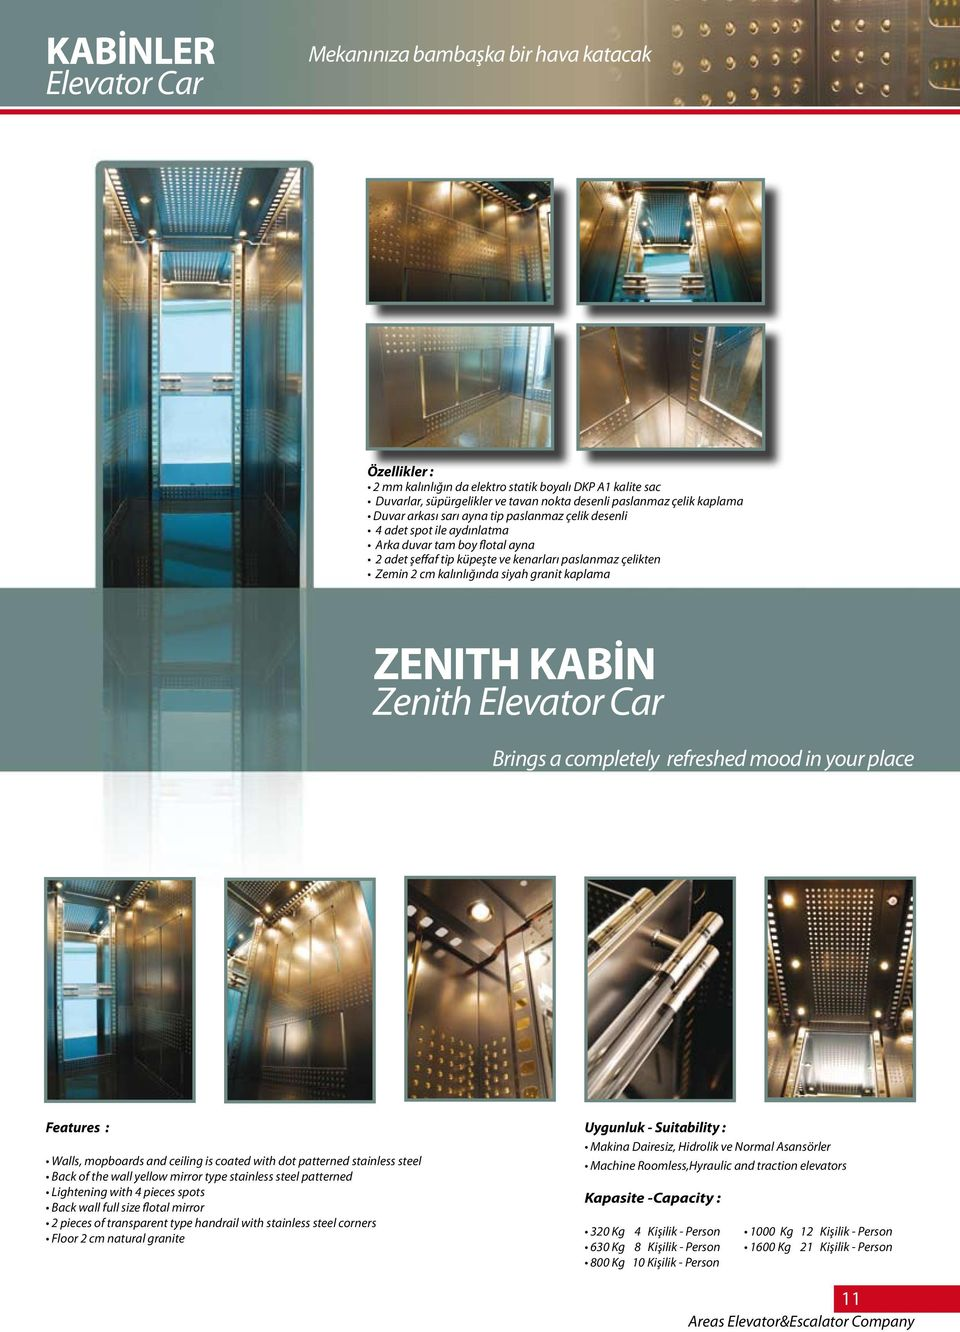 siyah granit kaplama ZENITH KABİN Zenith Elevator Car Brings a completely refreshed mood in your place Features : Walls, mopboards and ceiling is coated with dot patterned stainless steel Back of the